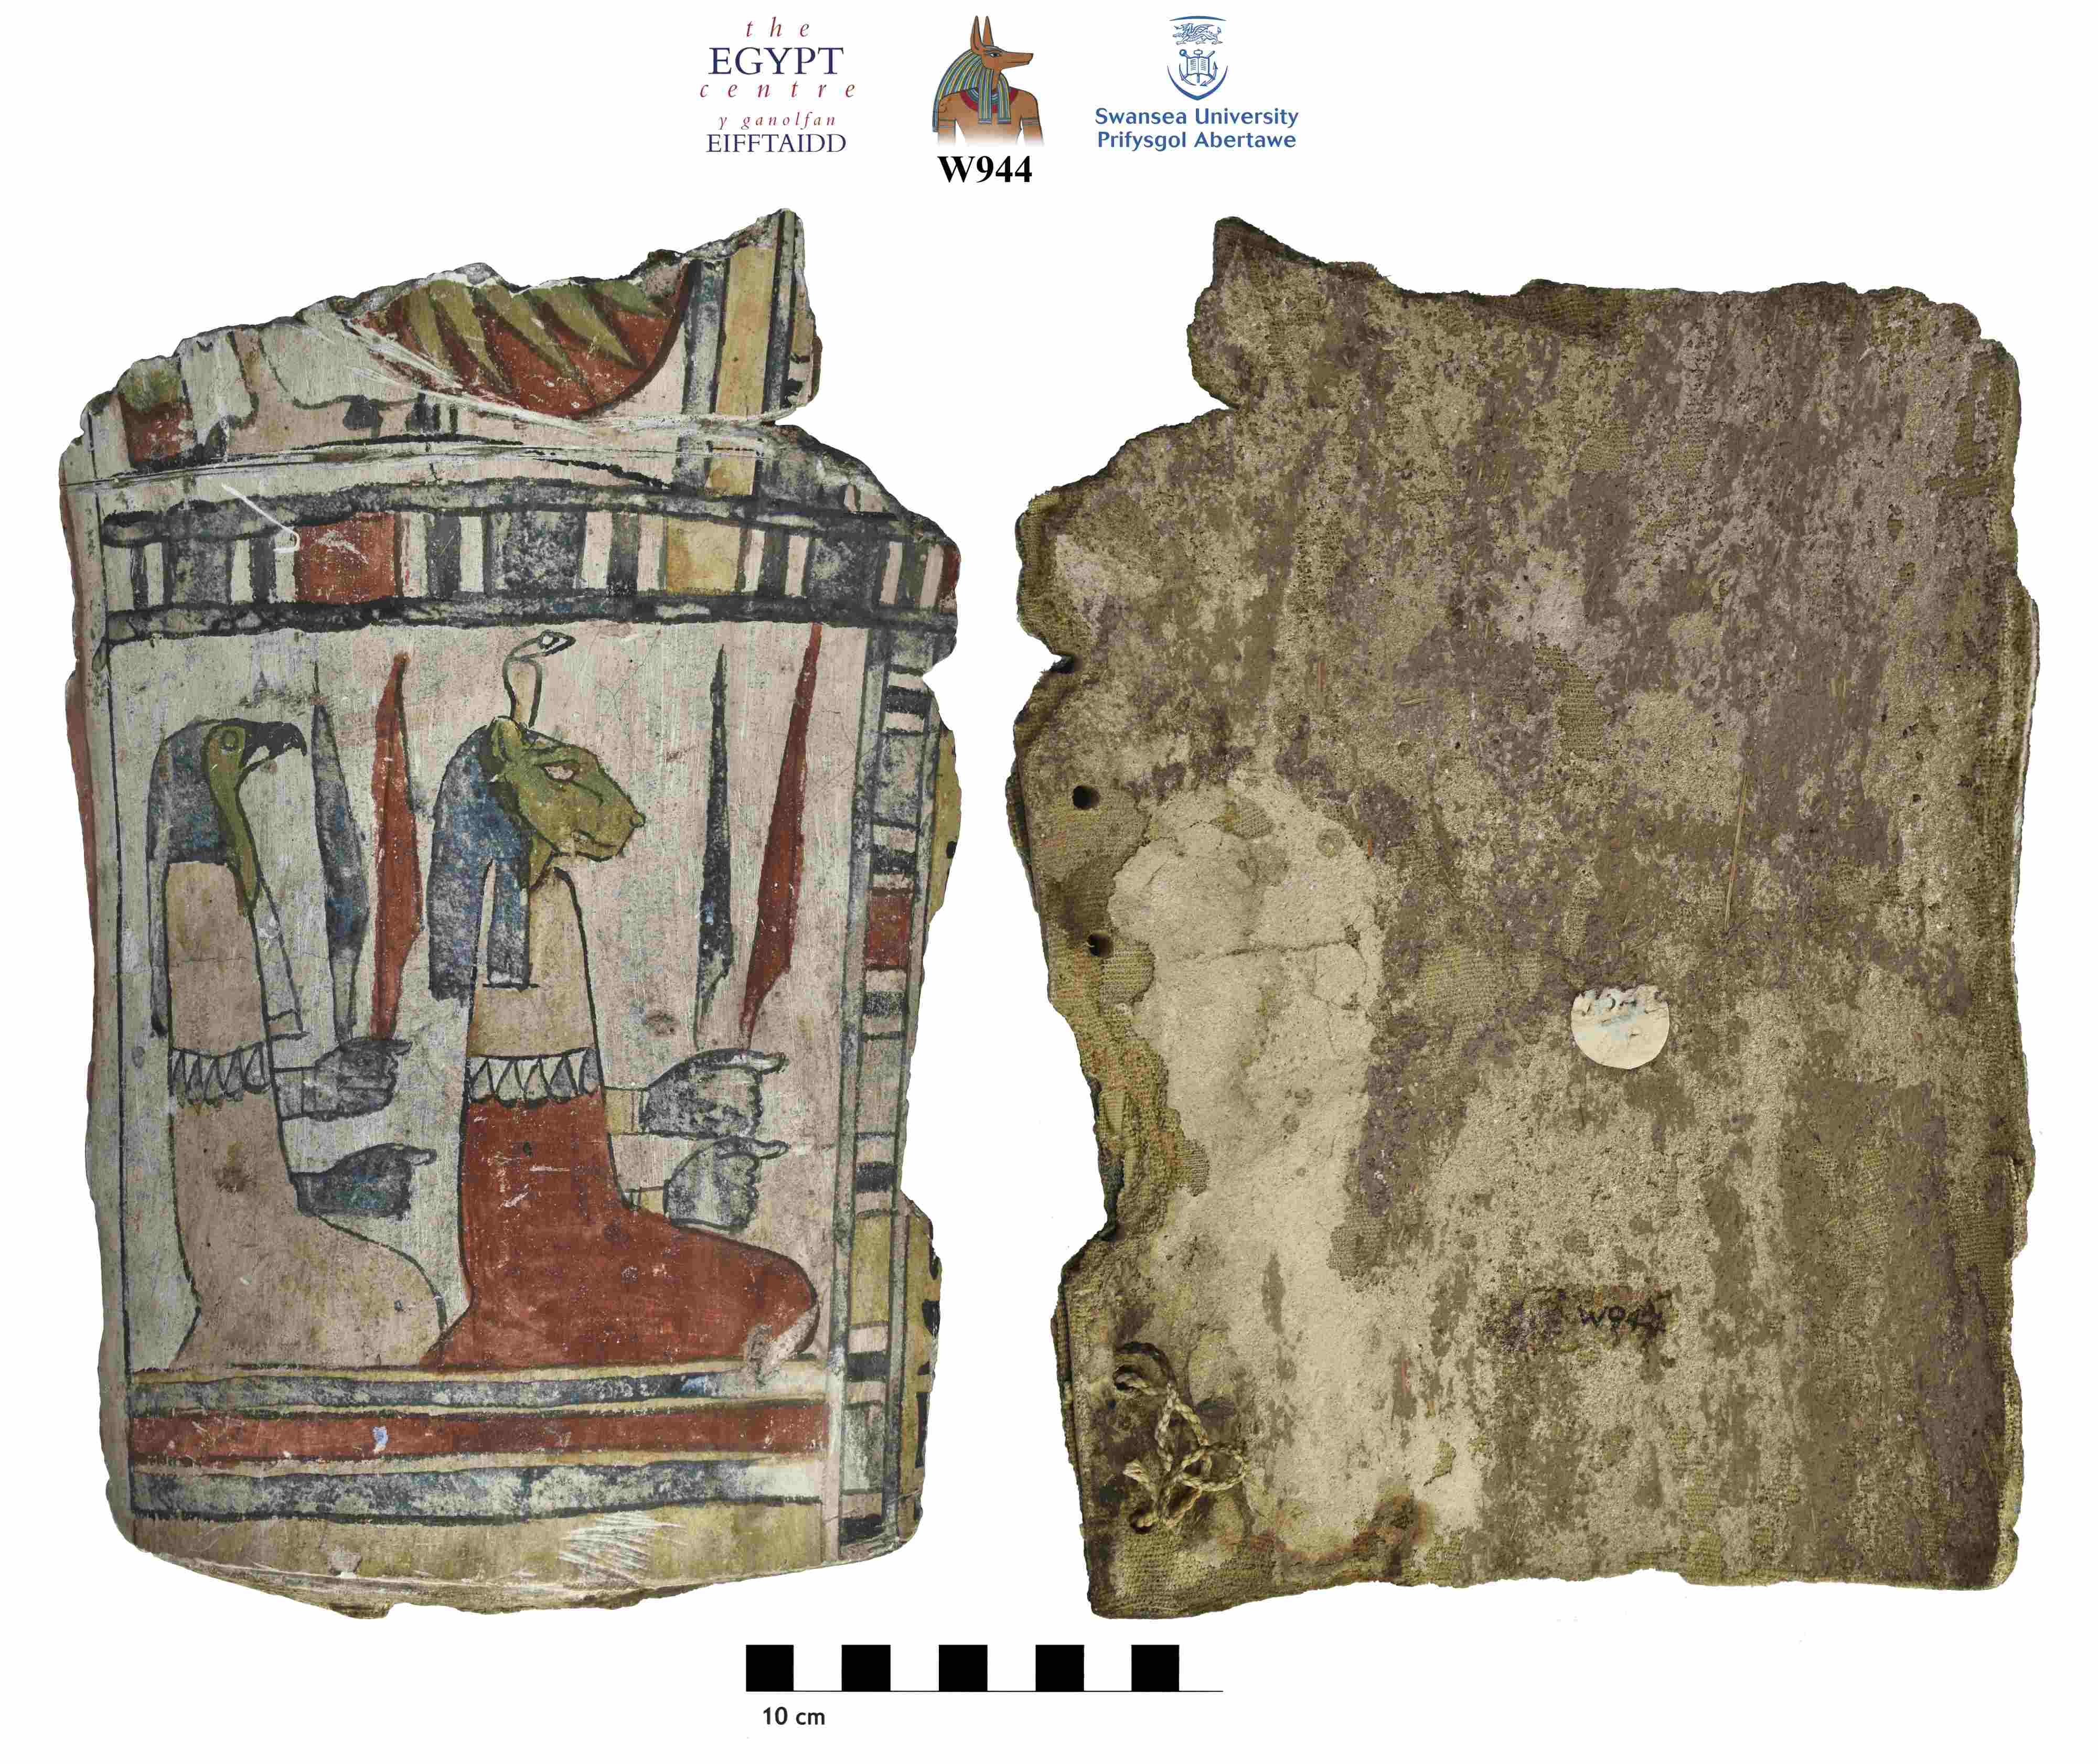 Image for: Fragment of a cartonnage coffin